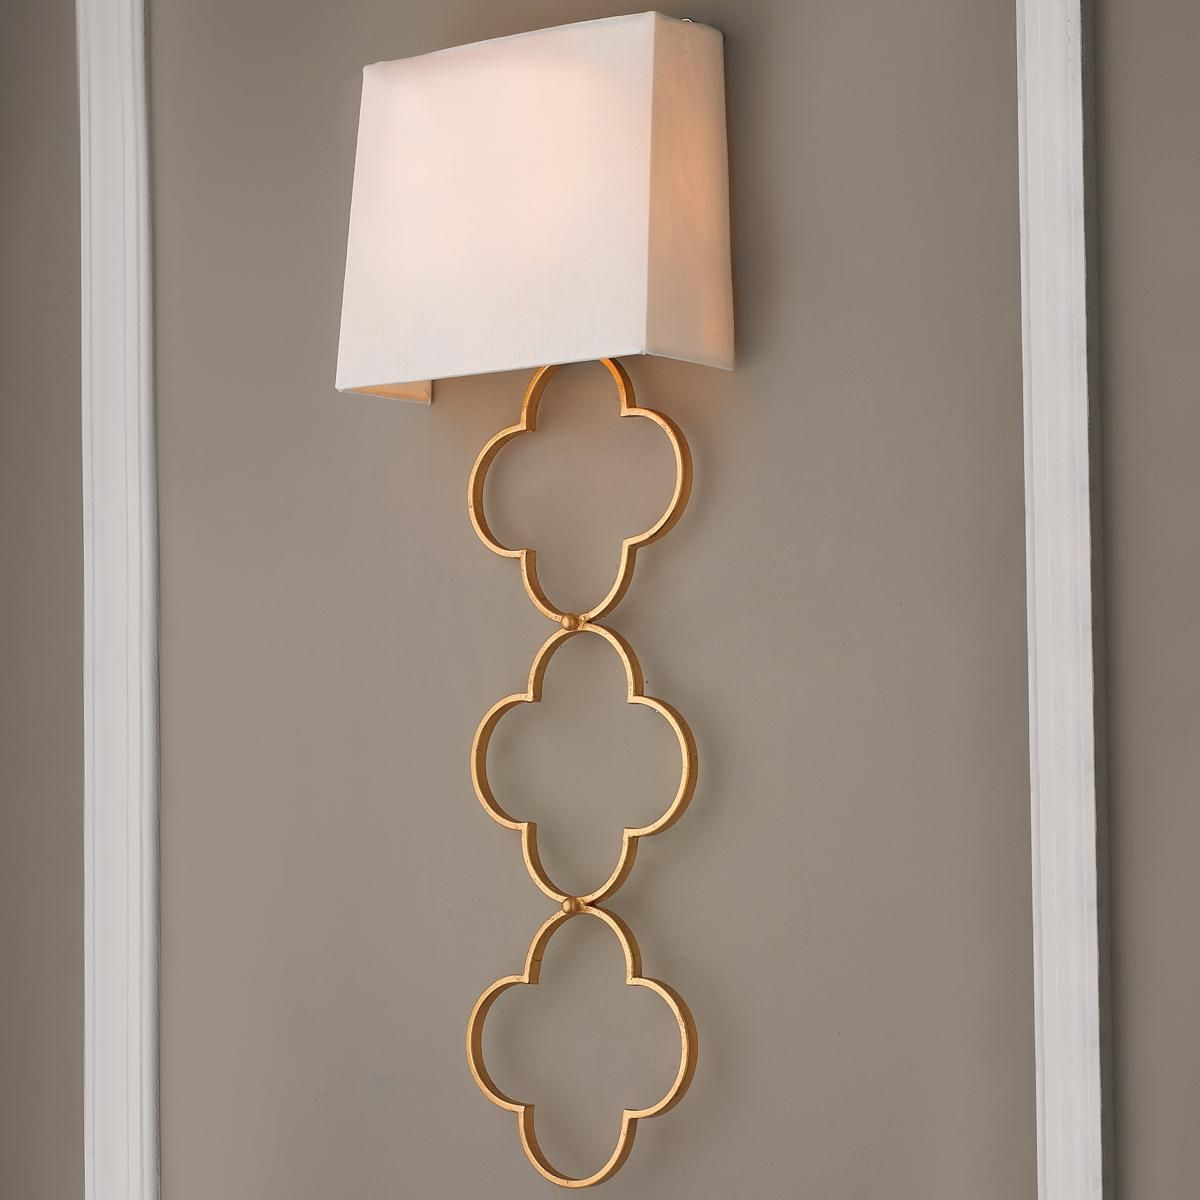 Ada quatrefoil chain wall sconce this stunning wall sconce is sure ada quatrefoil chain wall sconce this stunning wall sconce is sure to catch attention the amipublicfo Images